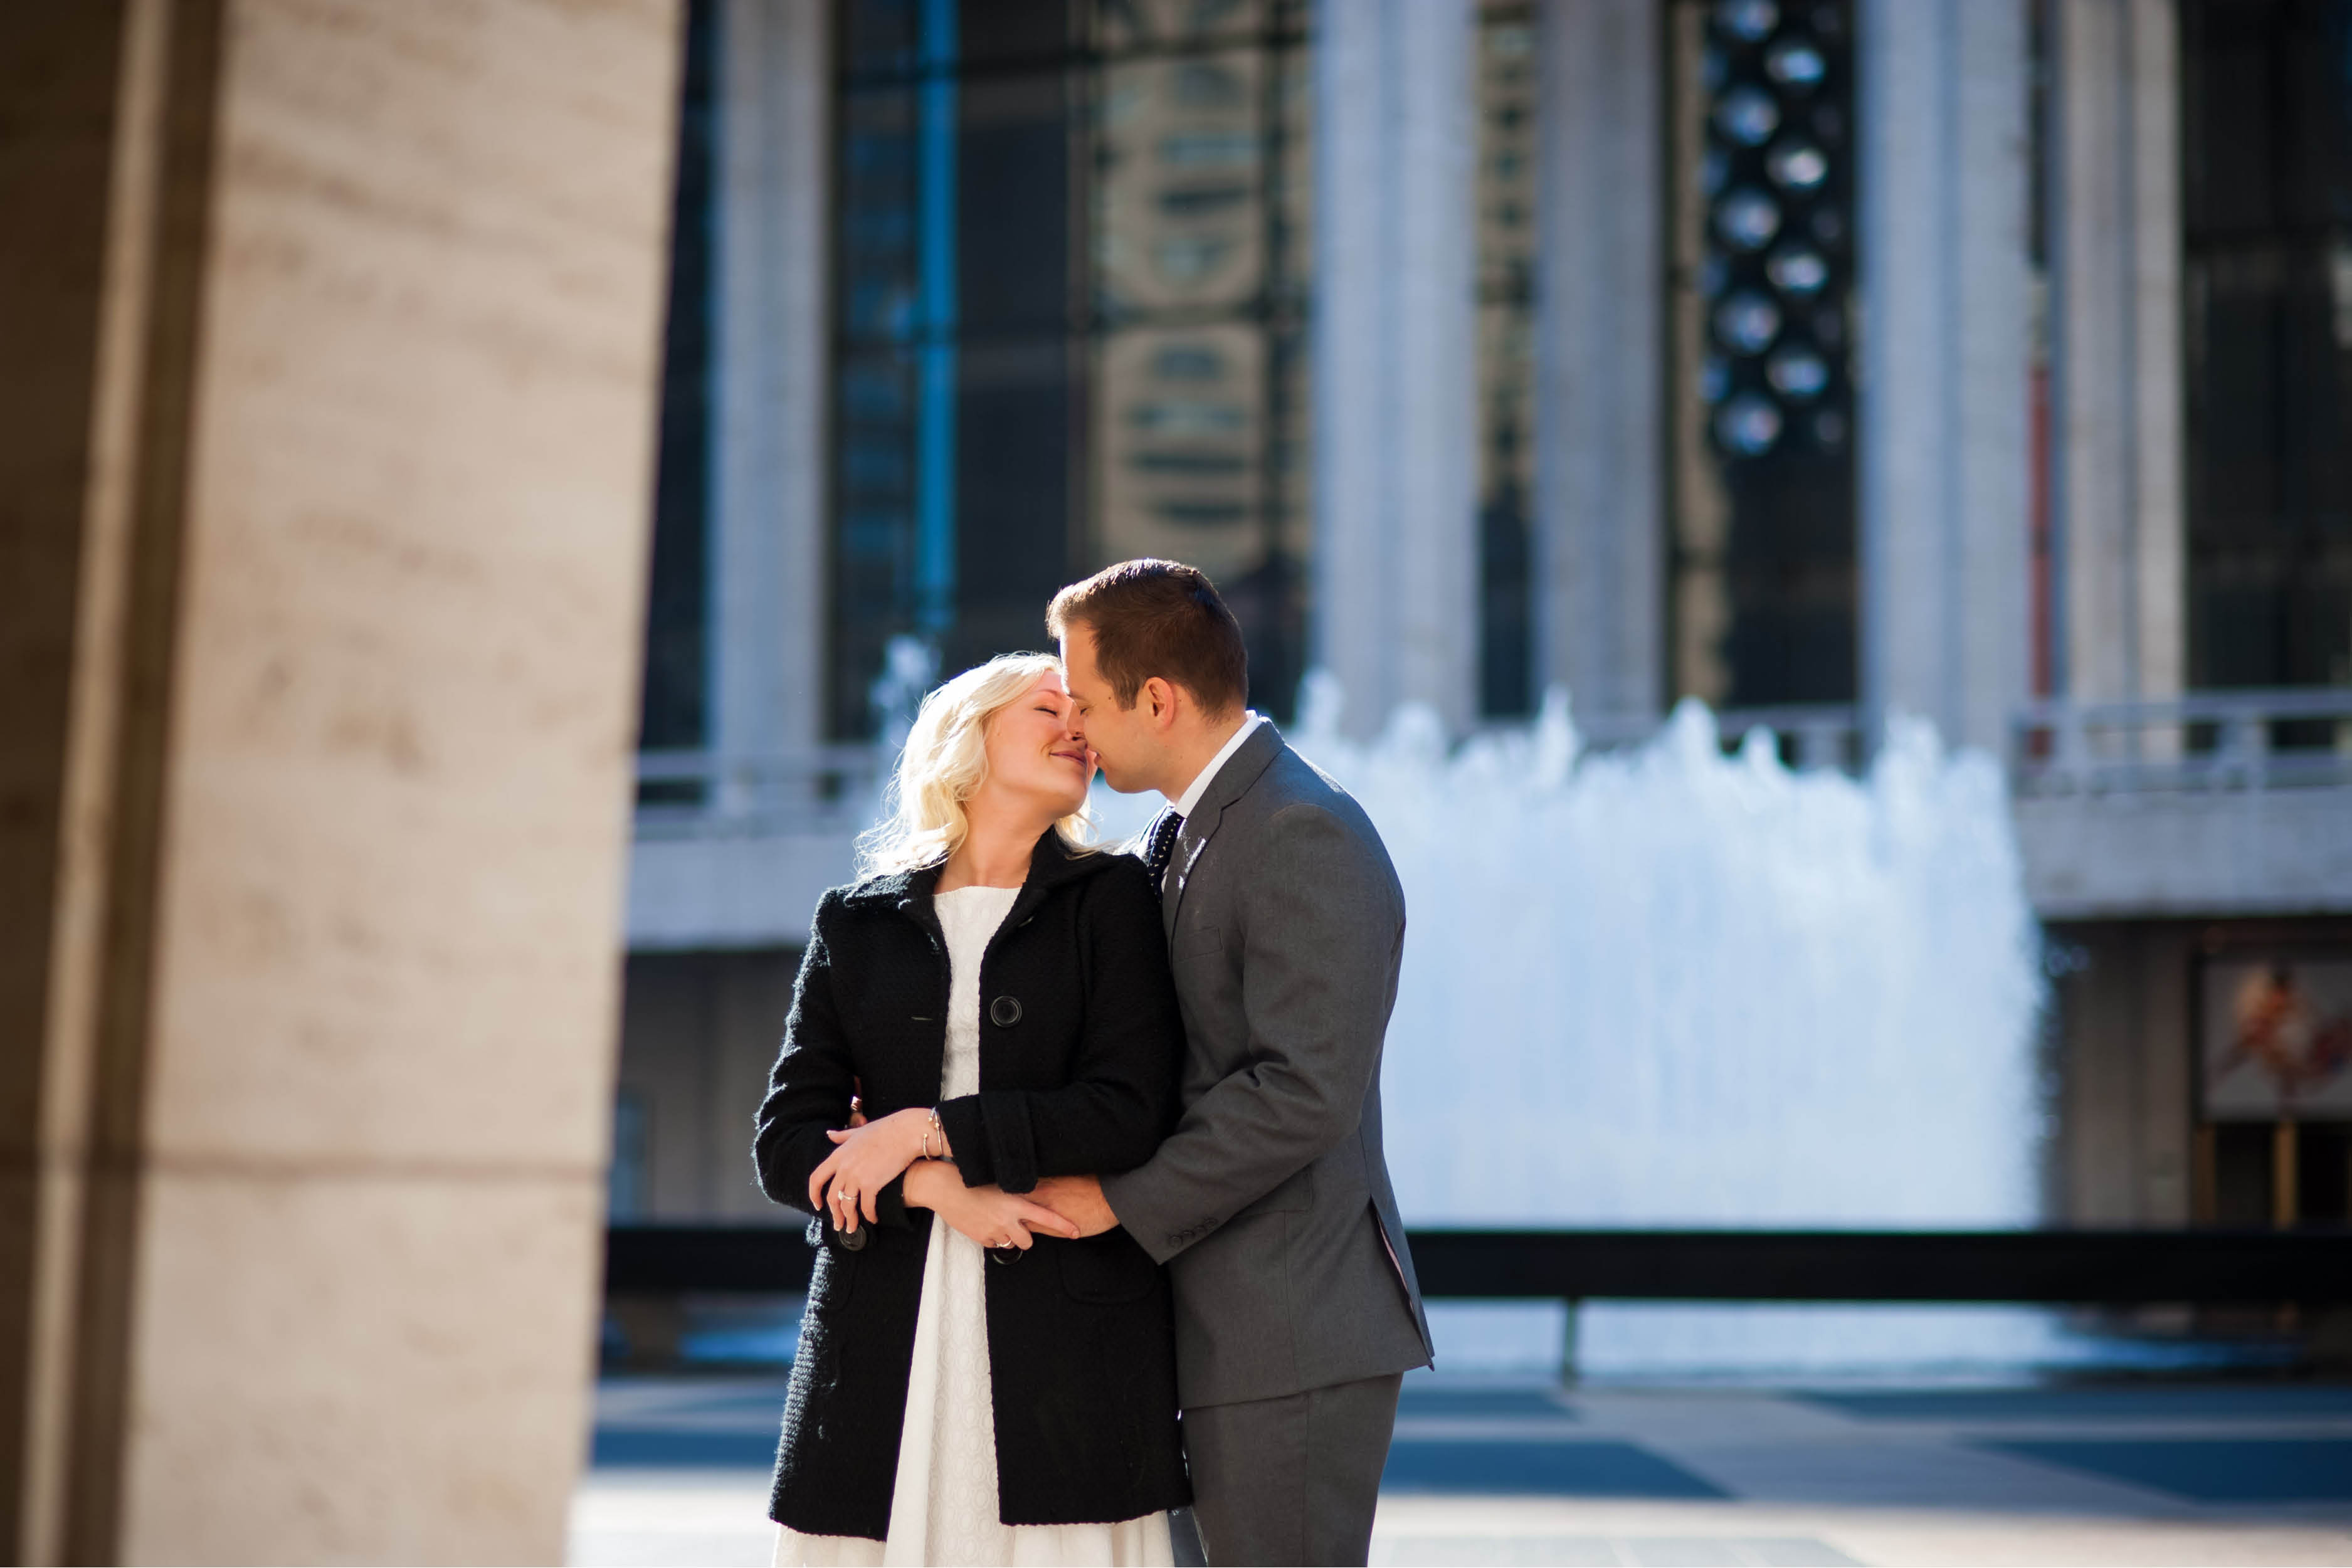 Emma_cleary_photography Lincoln center engagement shoot6